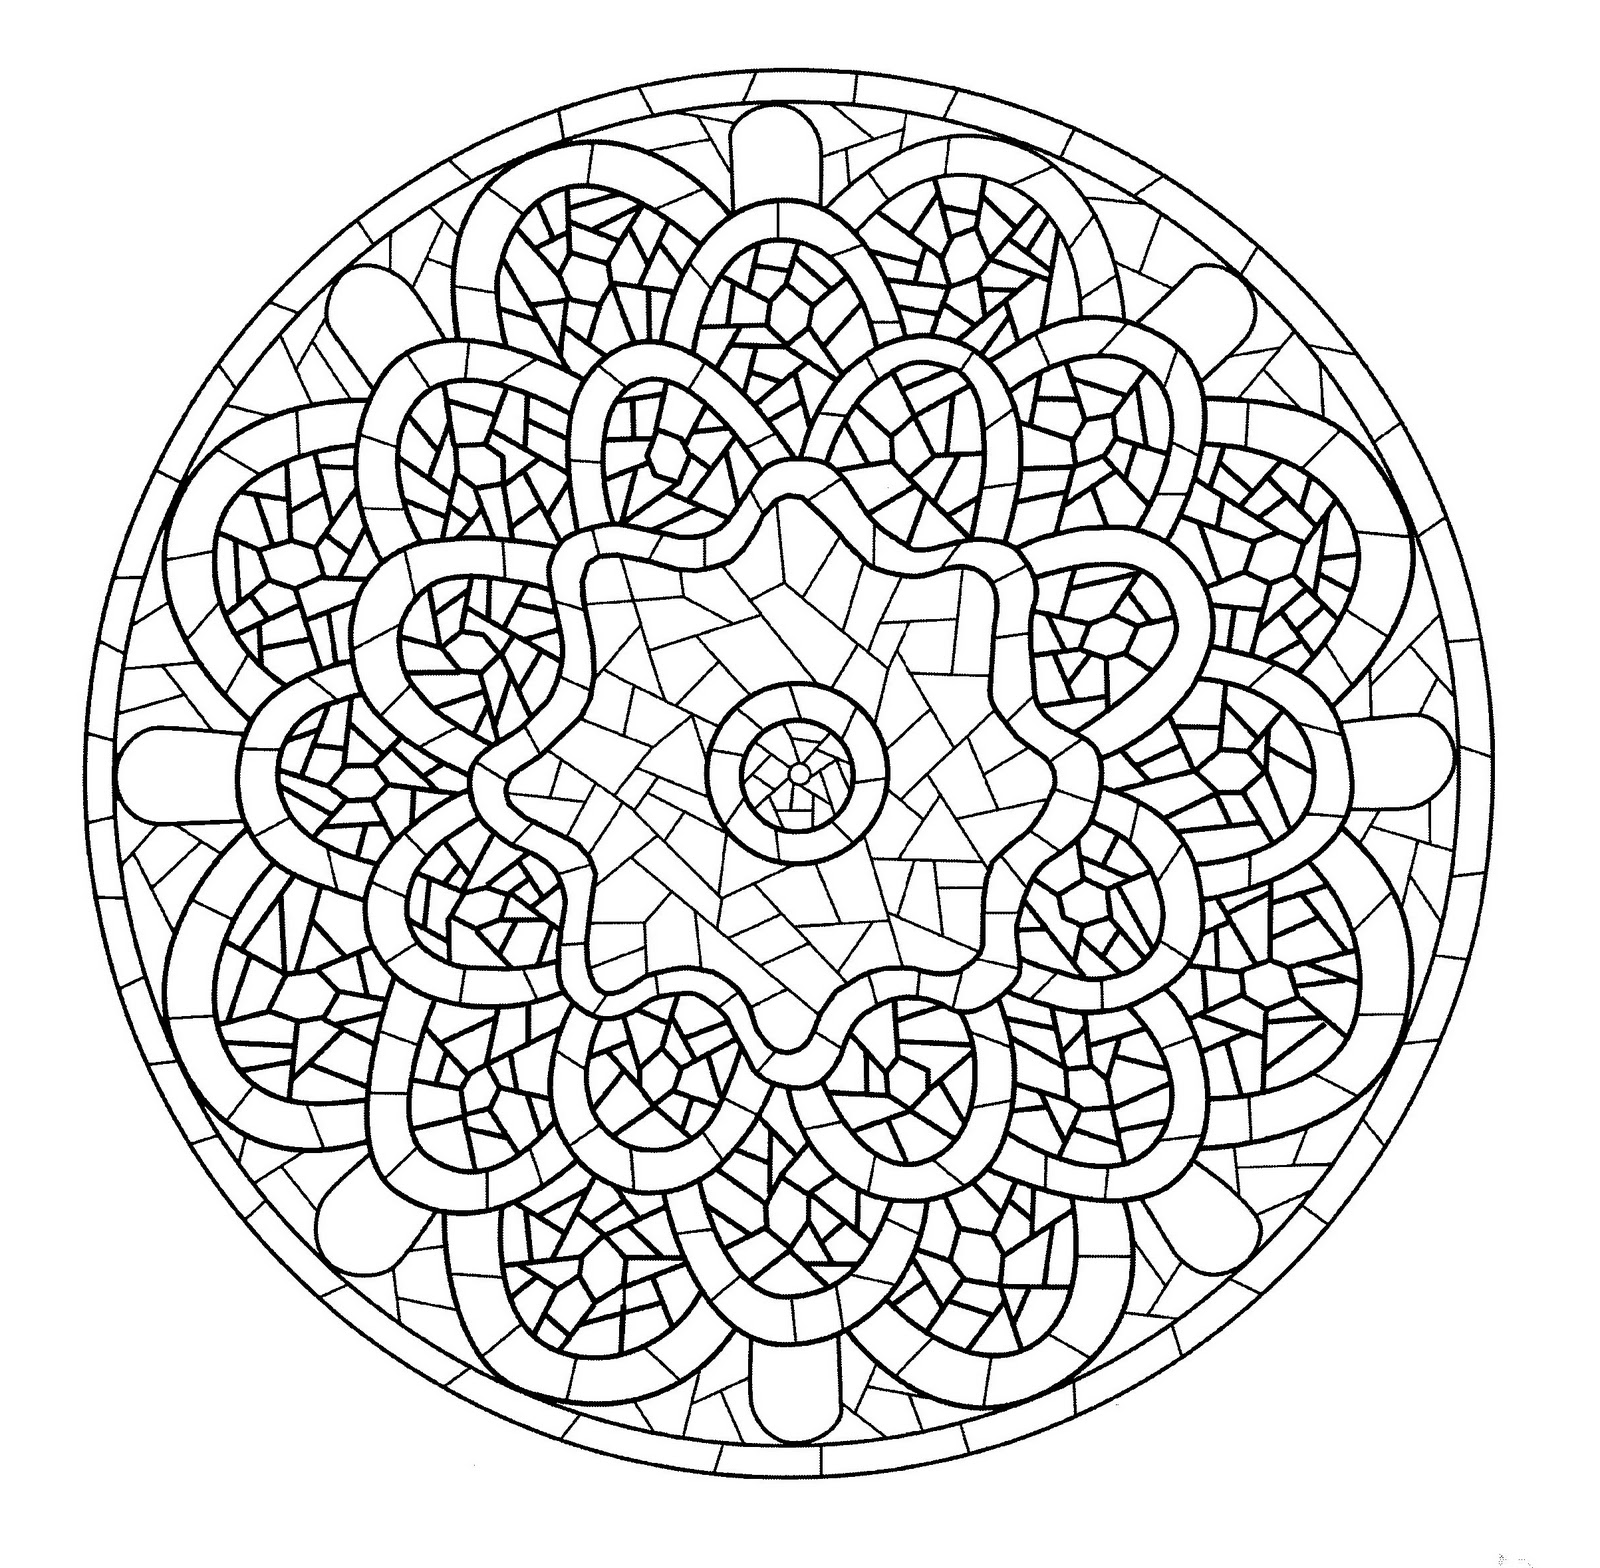 mandala coloring pictures i create coloring mandalas and give them away for free pictures coloring mandala